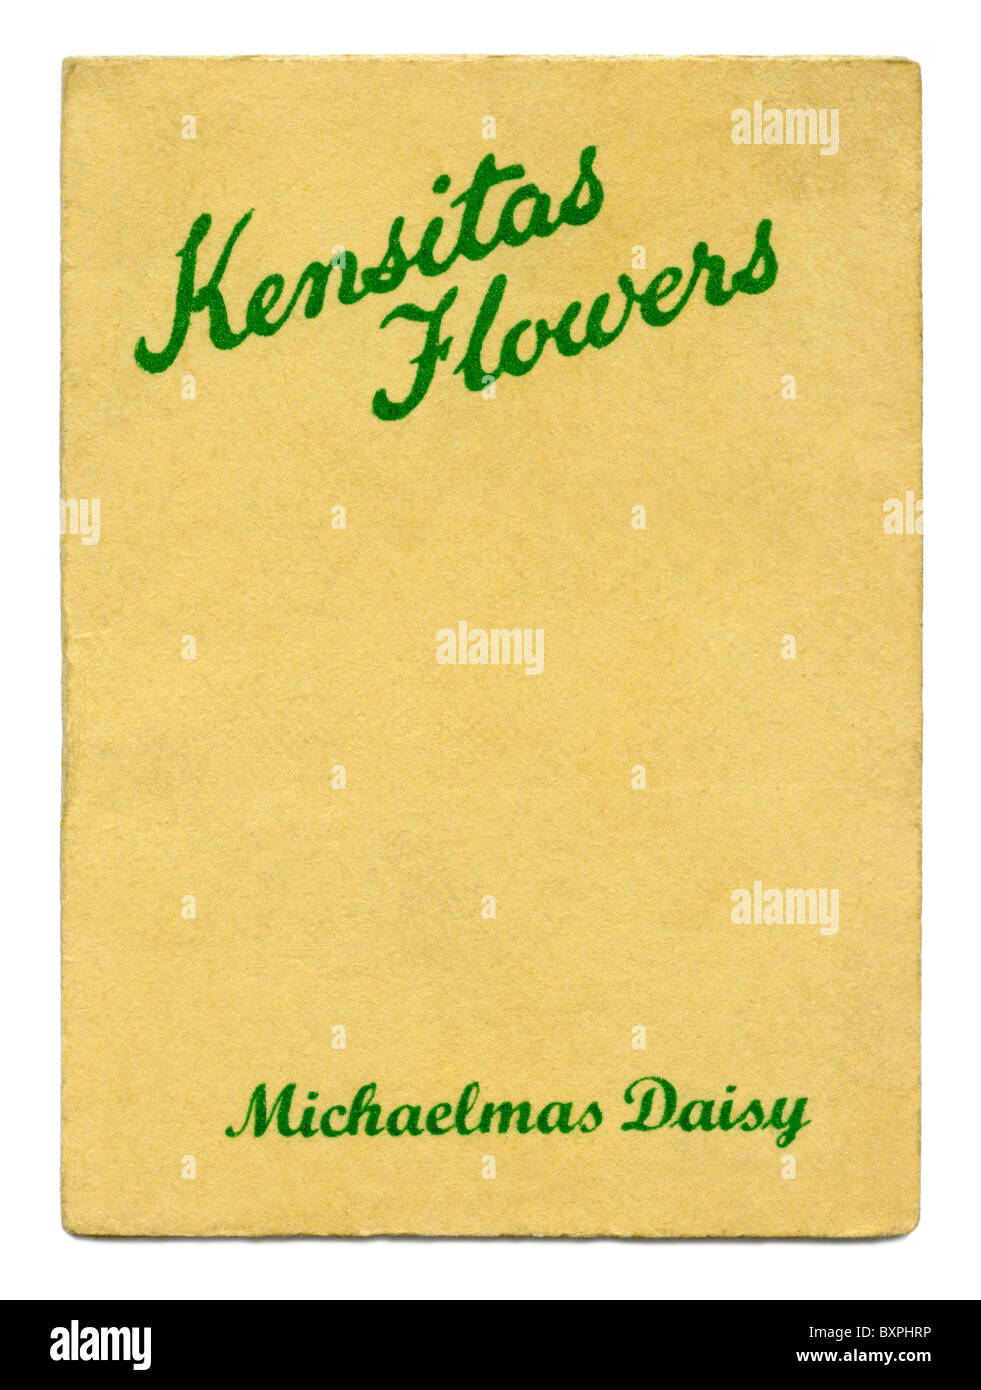 Kensitas Flowers cigarette card folder containing a silk flower inside, given away in packs of cigarettes in 1933 - Stock Image